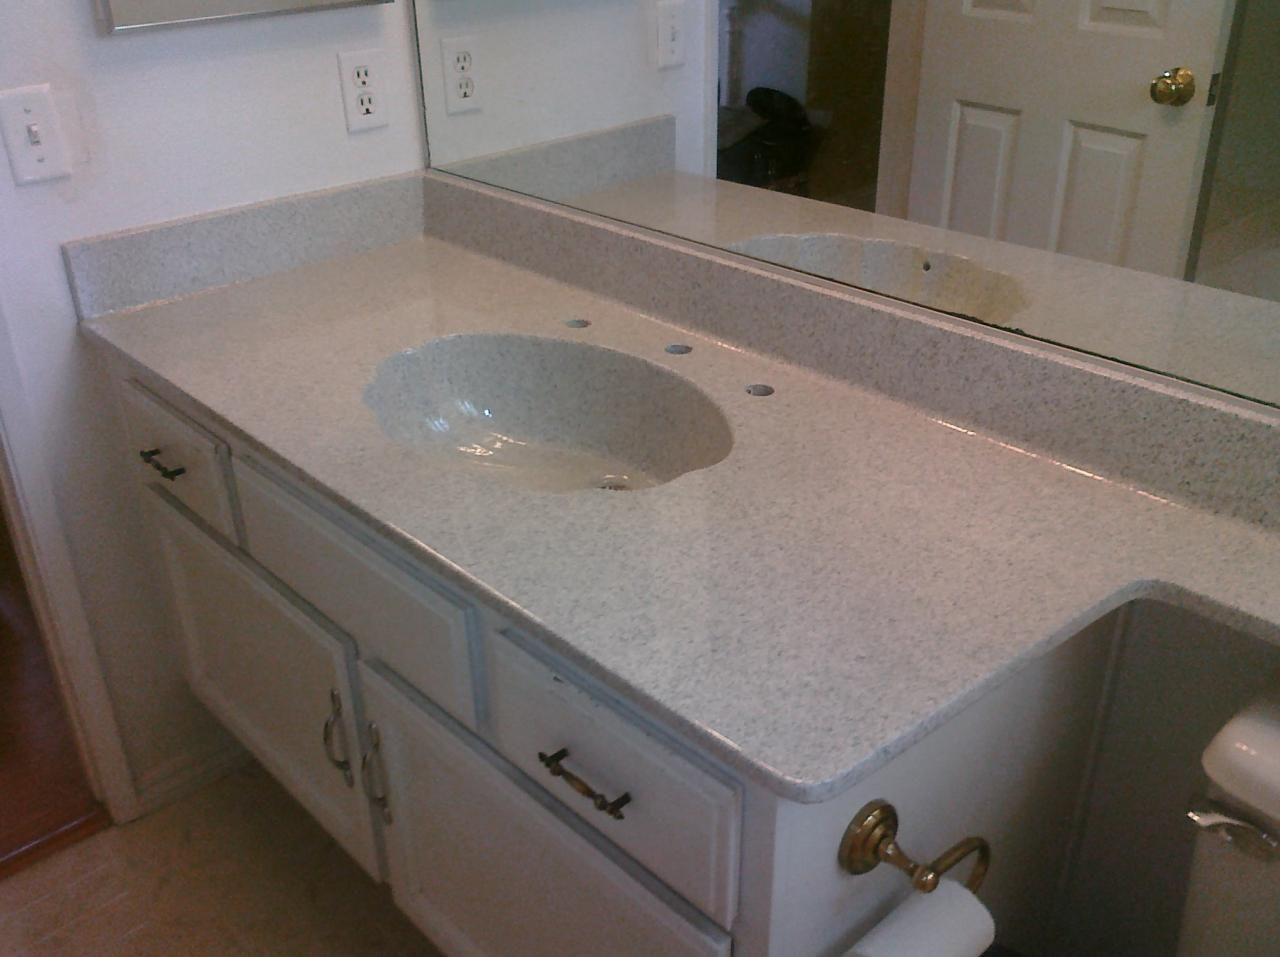 PKB Reglazing : Cultured Marble Countertop & Sink Combo Reglazed ...